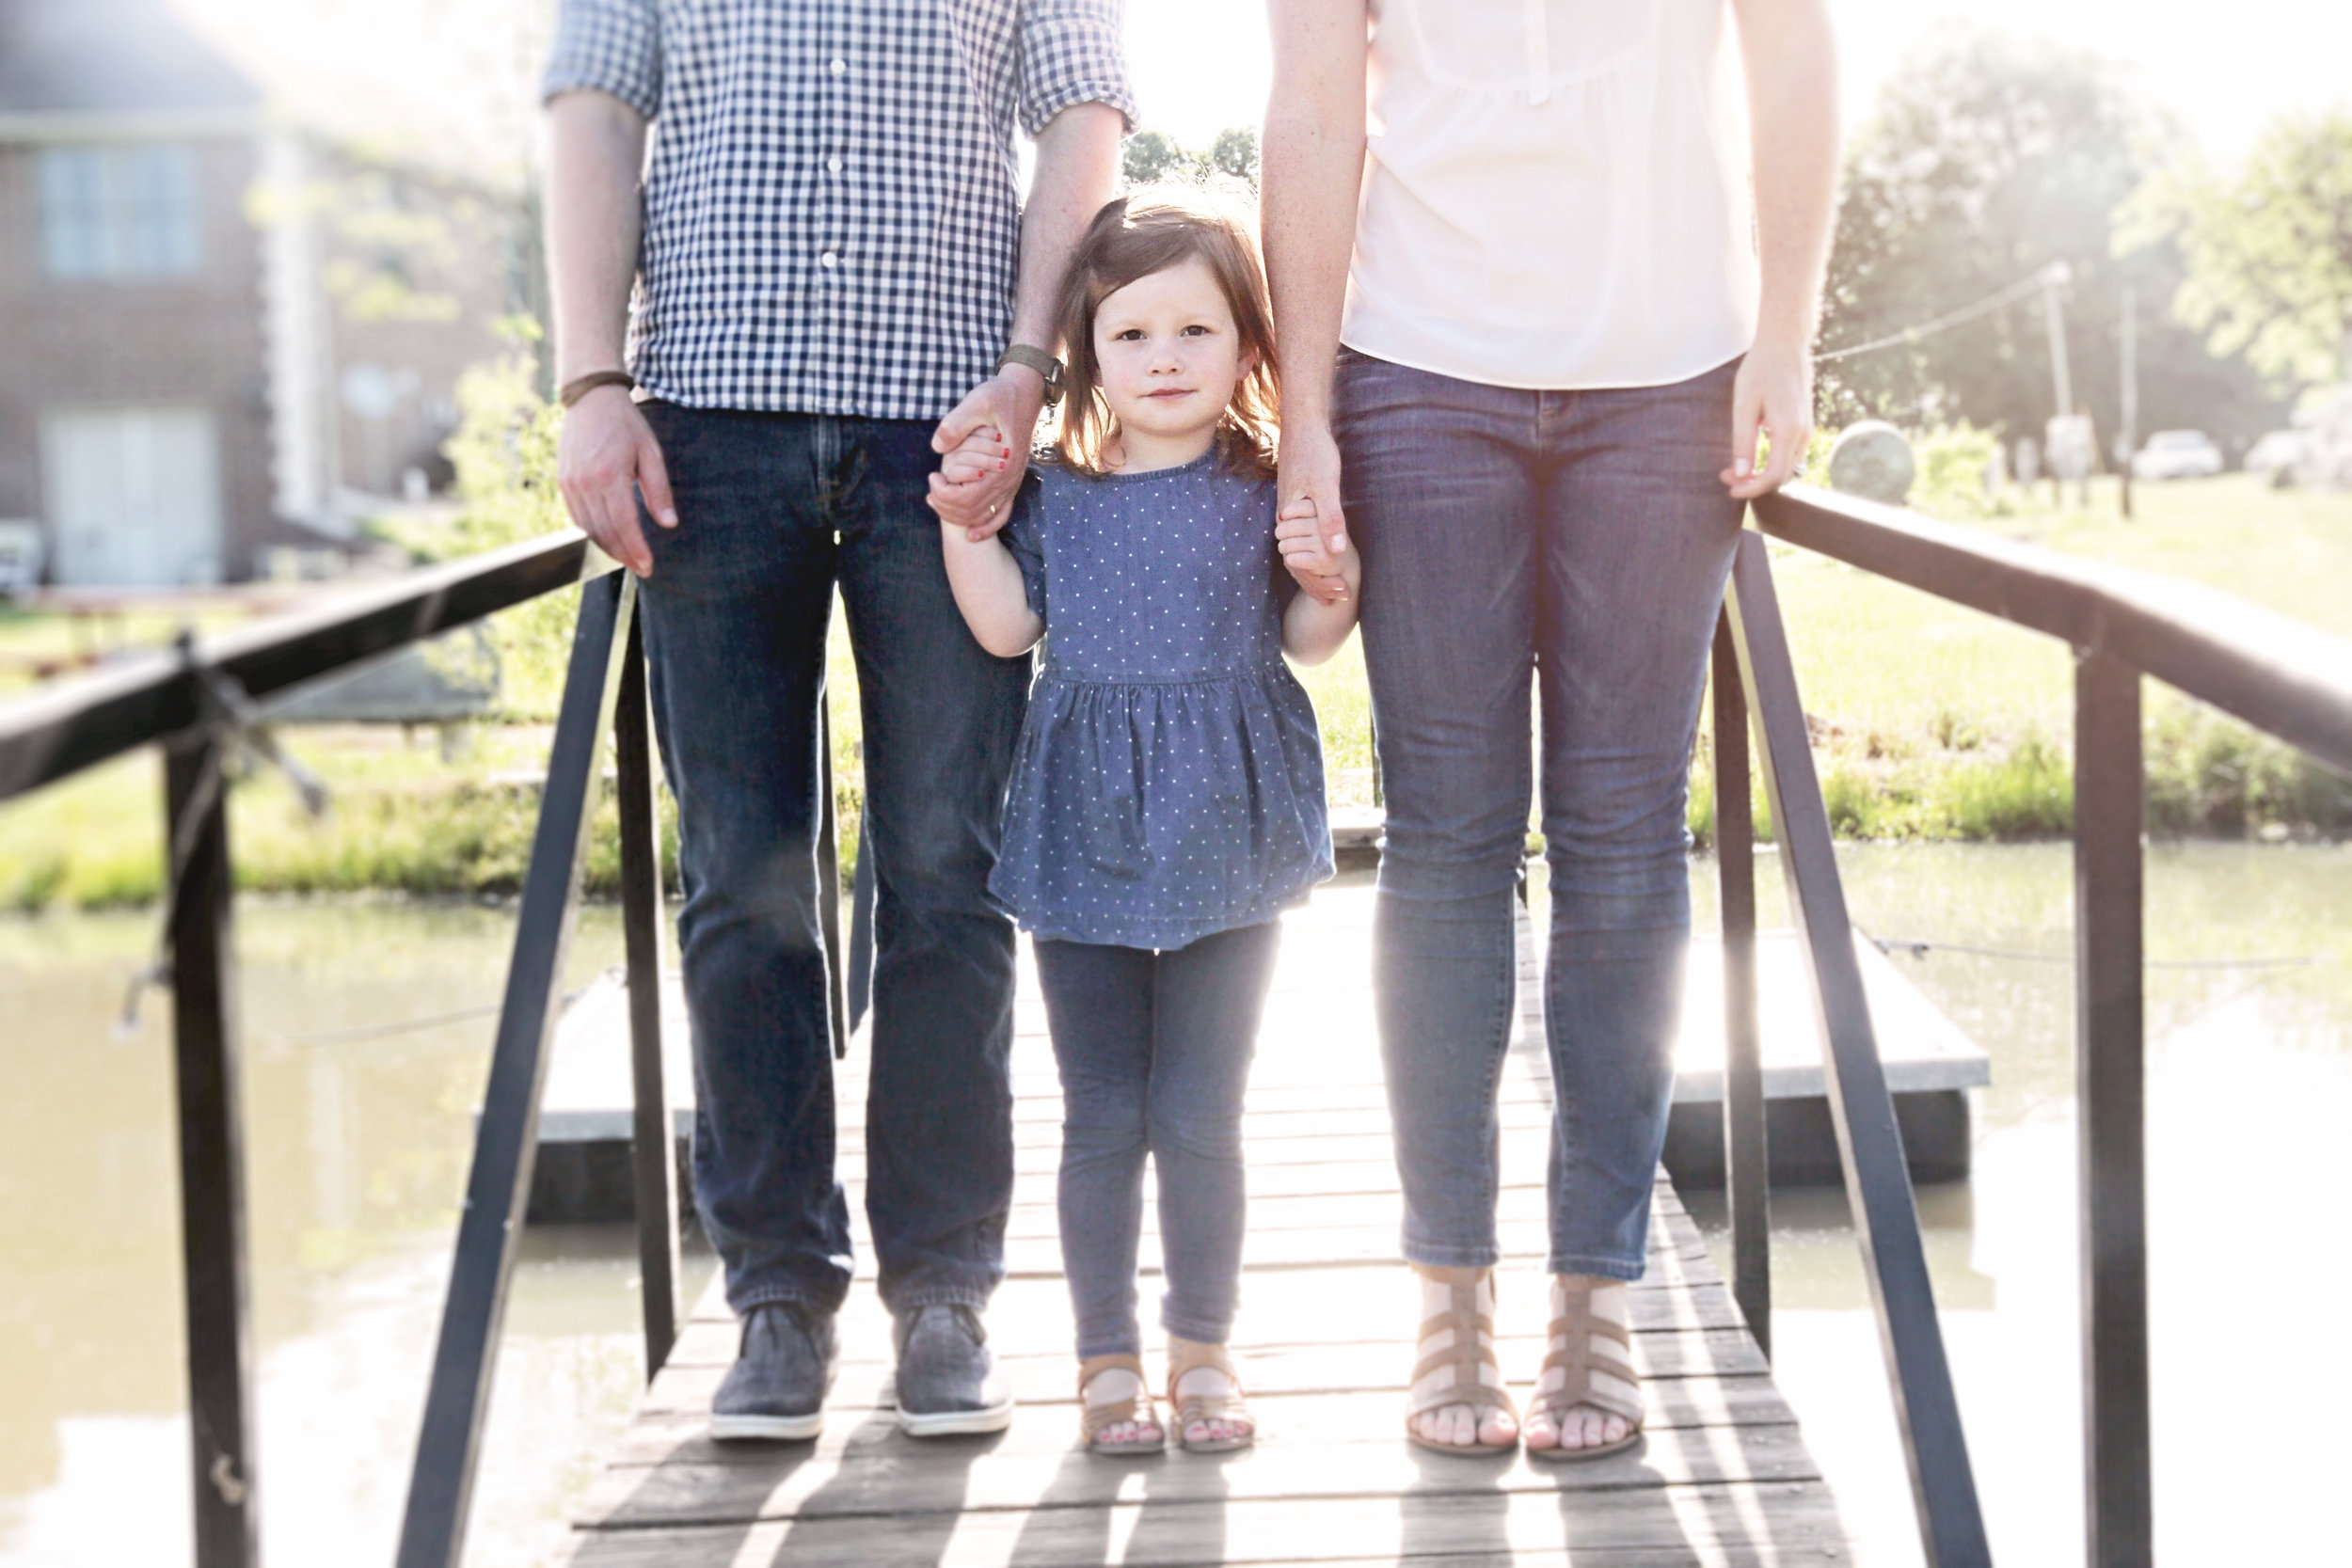 Family Session - $ 9845 Minutes, 15-20 edited photos,personal online gallery with downloadMulti Family Session$ 12045 Minutes, 20 images, Your choice of group & individual posesPersonal online gallery with download